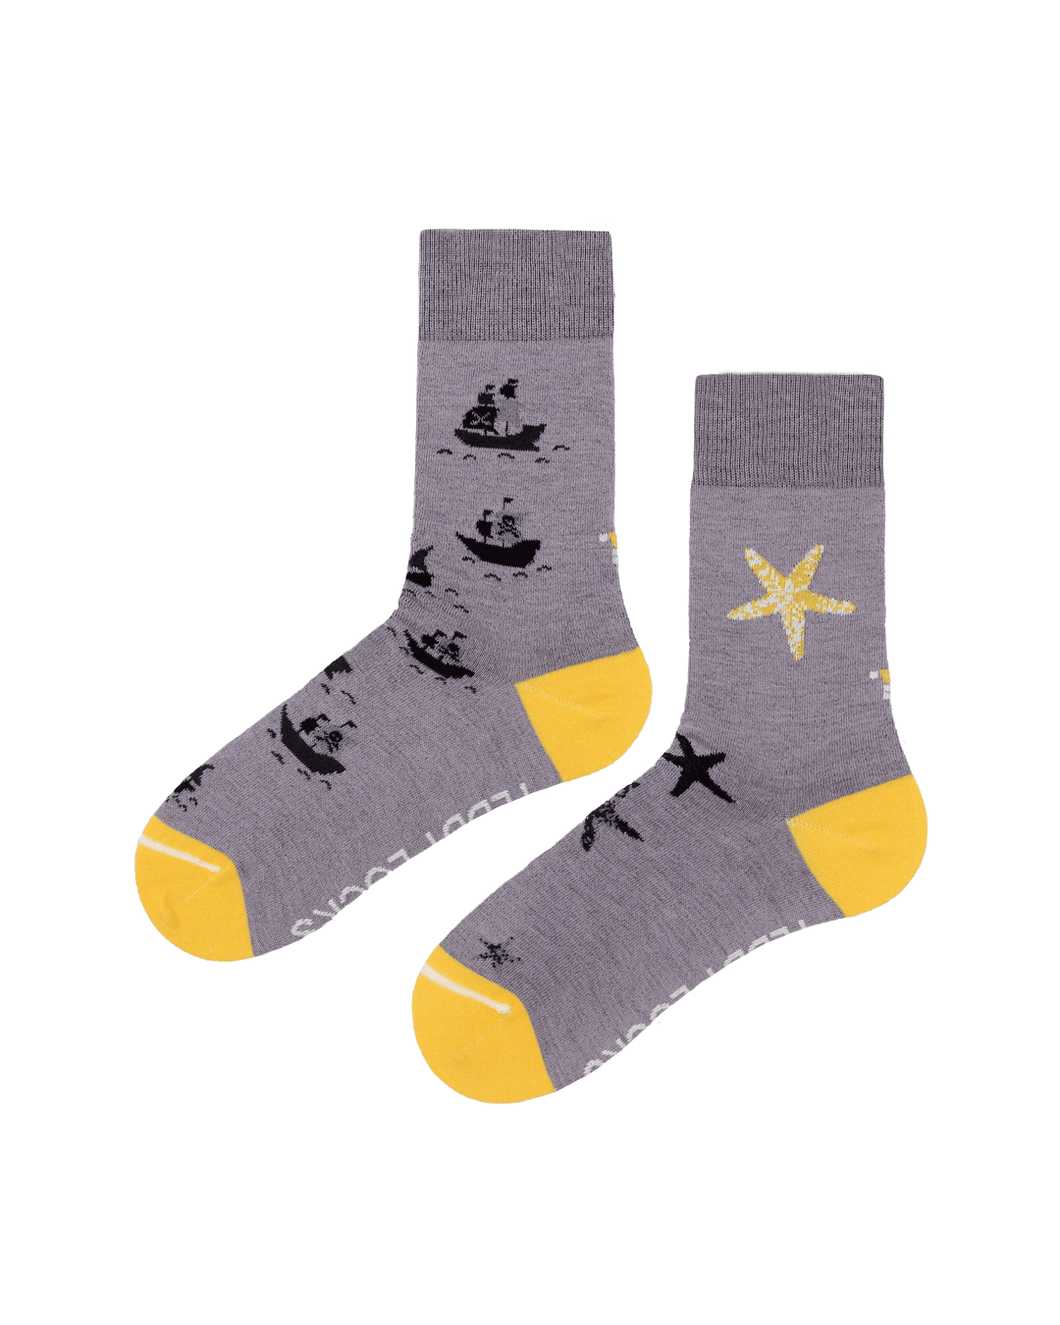 Teddy Locks sustainable socks. Light purple mismatched socks with yellow toes.